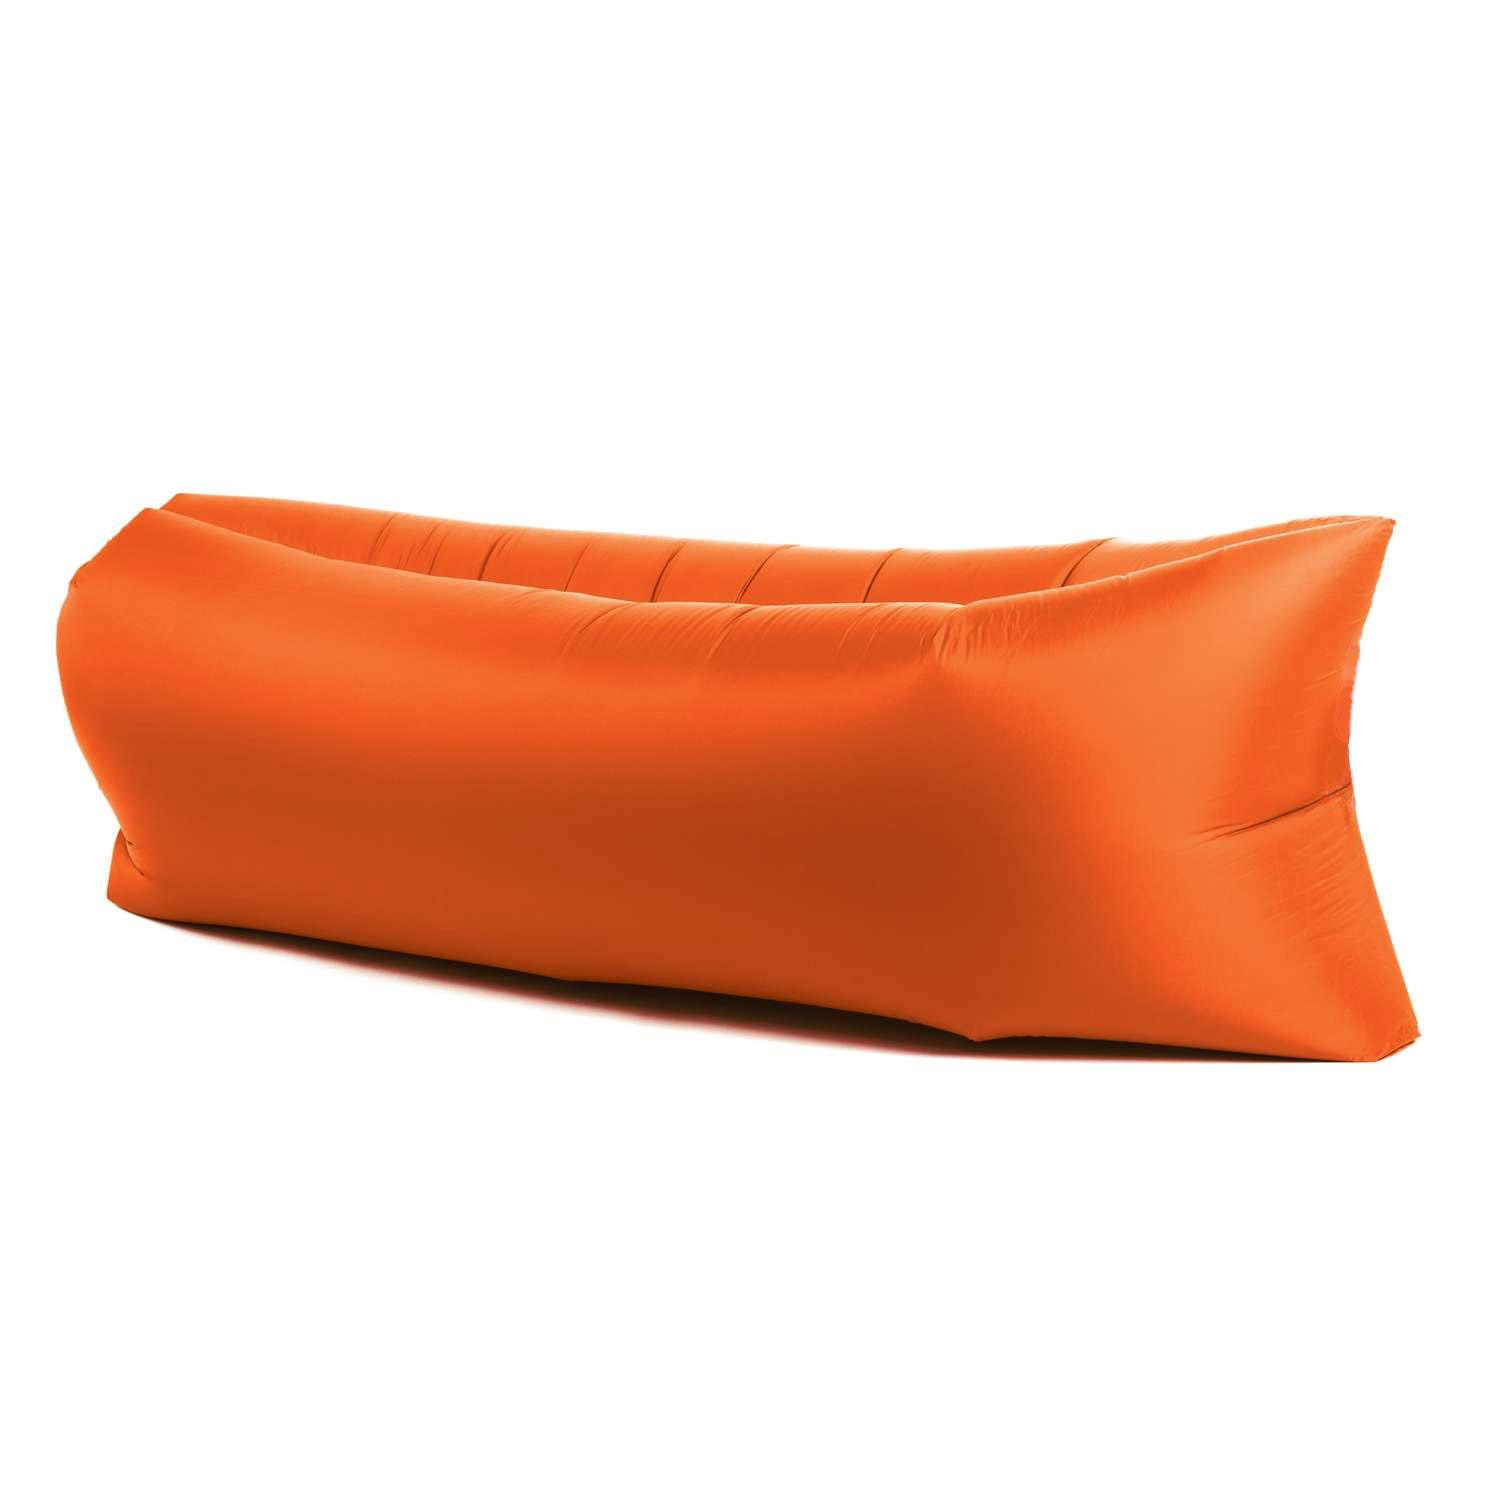 Anywhere Inflatable Lounger Indoor Amp Outdoor Orange